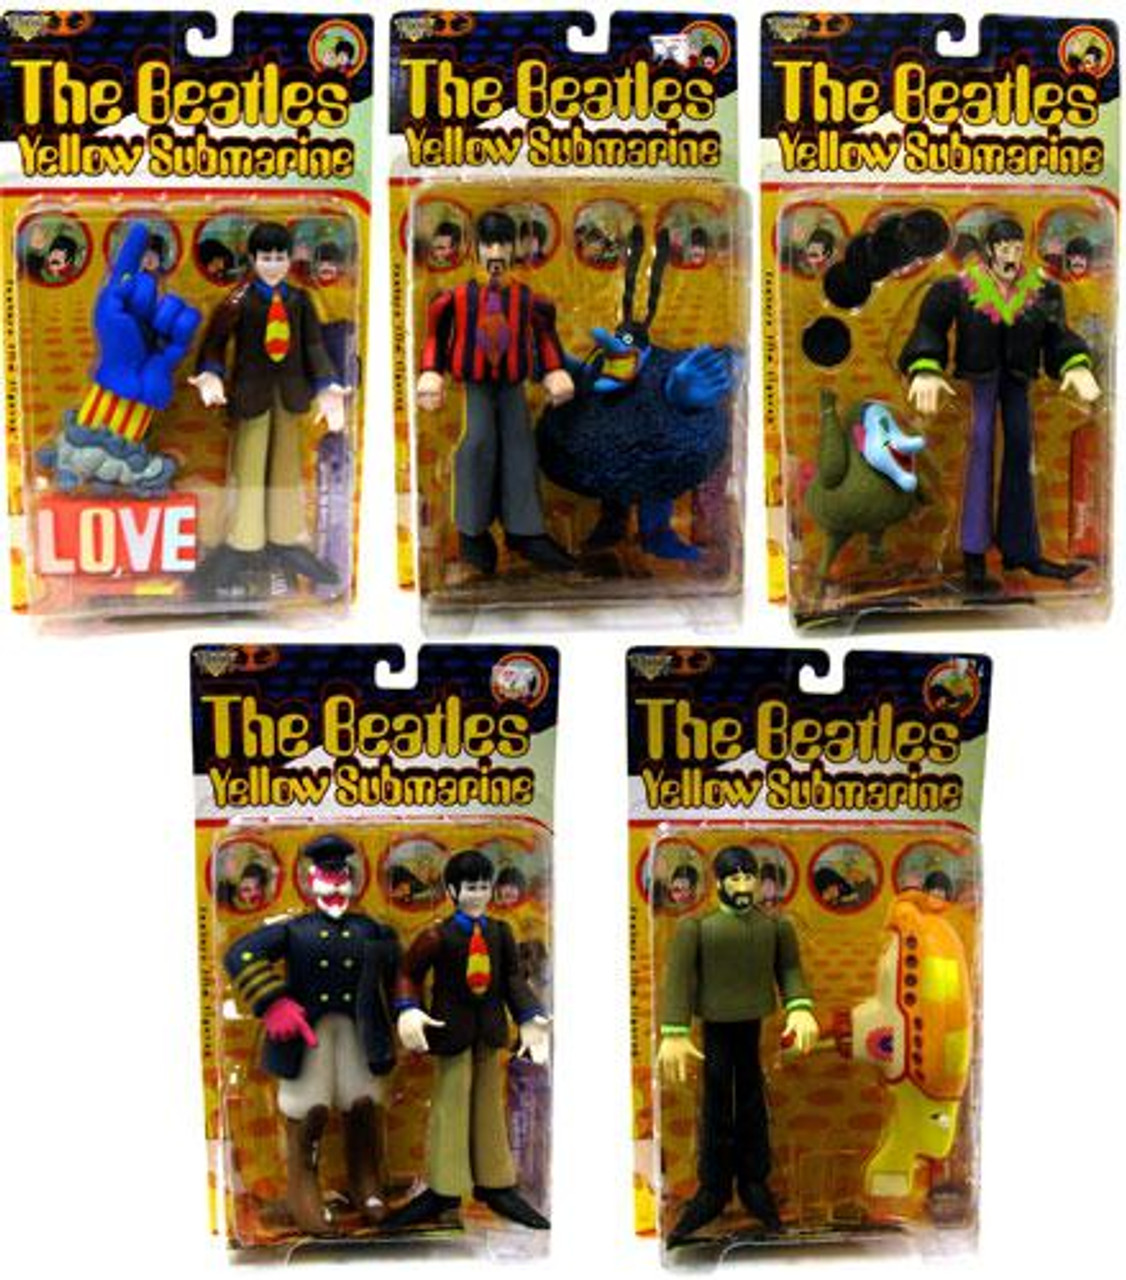 McFarlane Toys The Beatles Yellow Submarine Series 1 Set of 5 Action Figures